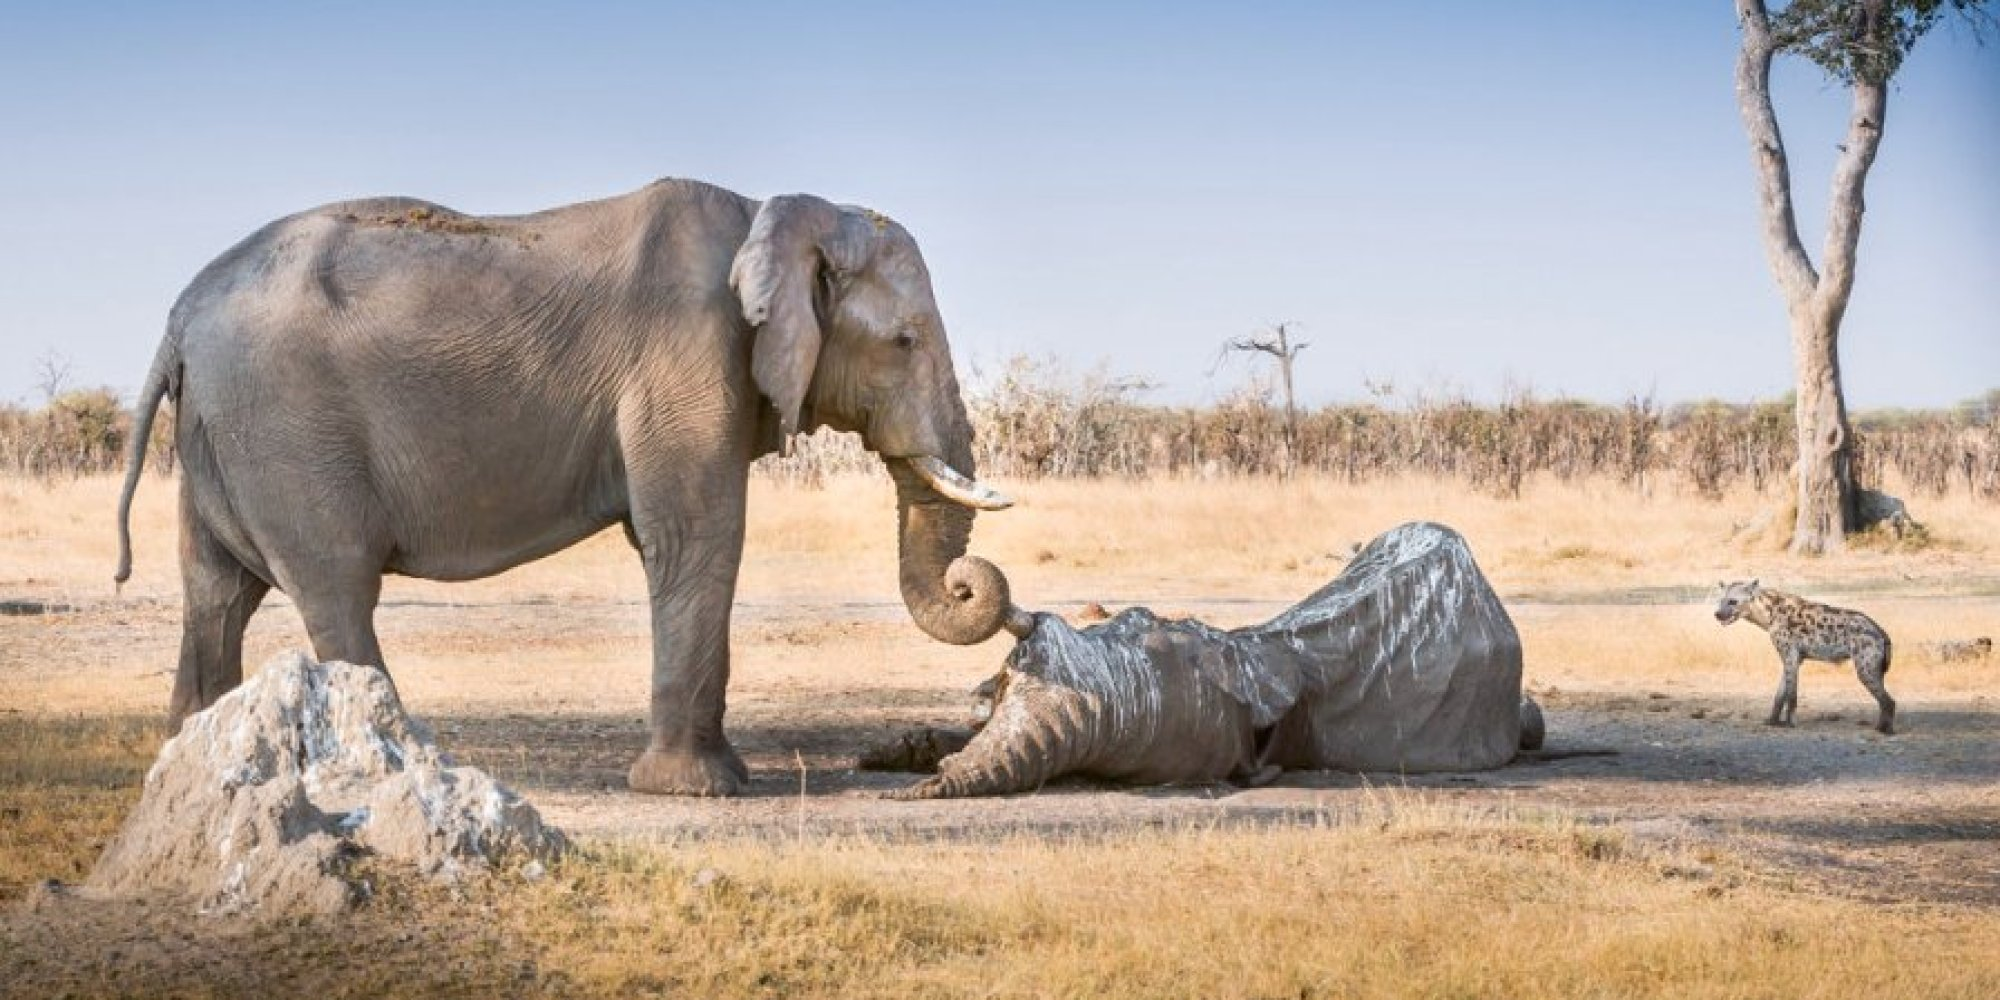 Elephant clings to tusk of dead friend in botswana picture huffpost uk - Image elephant ...